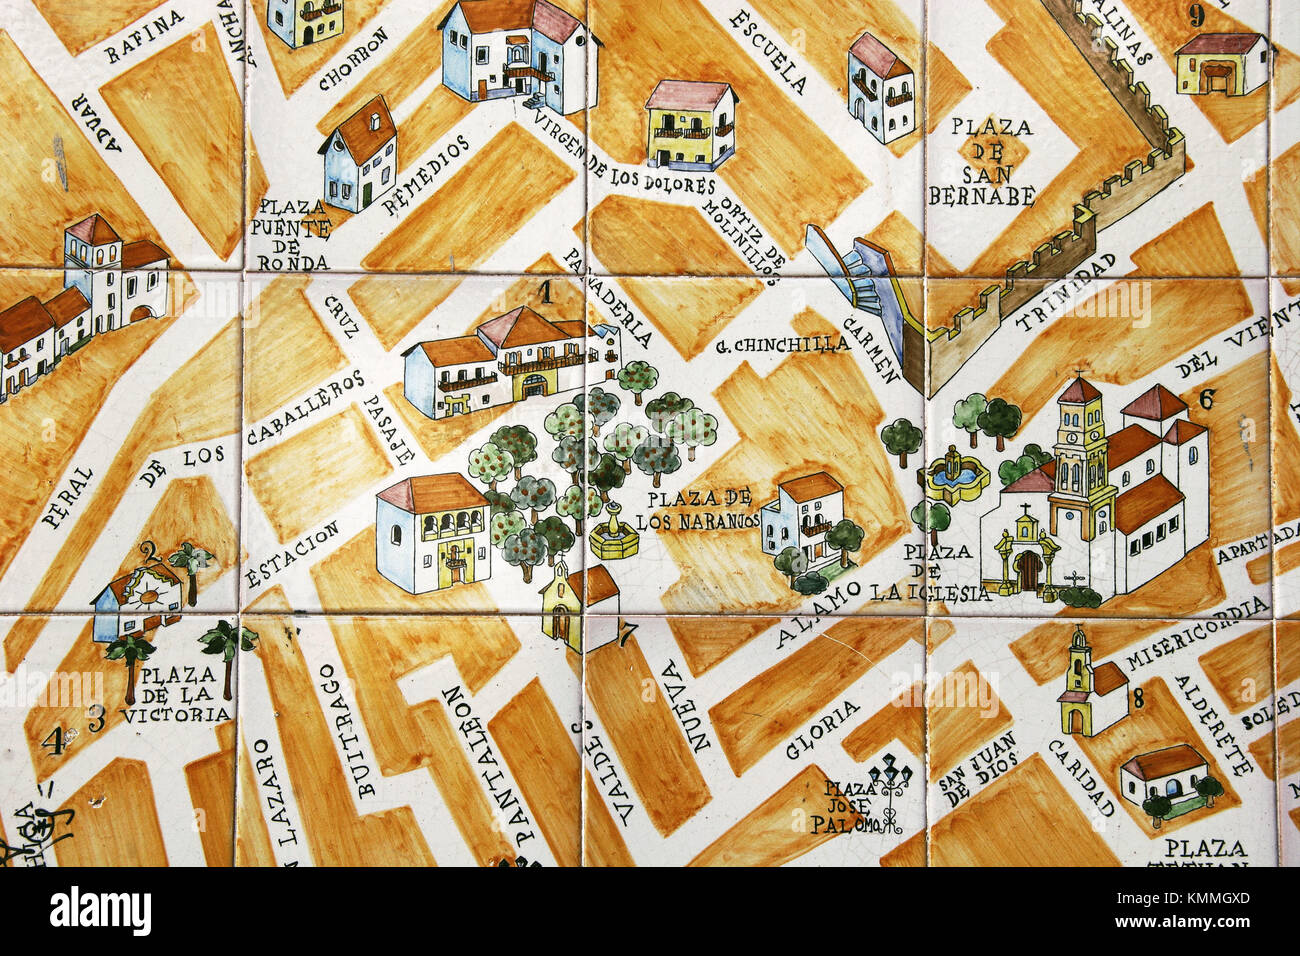 Ceramic map of historical centre, Marbella. Costa del Sol ... on map of italica, map of marsala, map of getxo, map of monchengladbach, map of iruna, map of macapa, map of soria, map of puerto rico gran canaria, map of costa de la luz, map of isla margarita, map of bizkaia, map of venice marco polo, map of tampere, map of graysville, map of mutare, map of penedes, map of mount ephraim, map of cudillero, map of andalucia, map of sagunto,